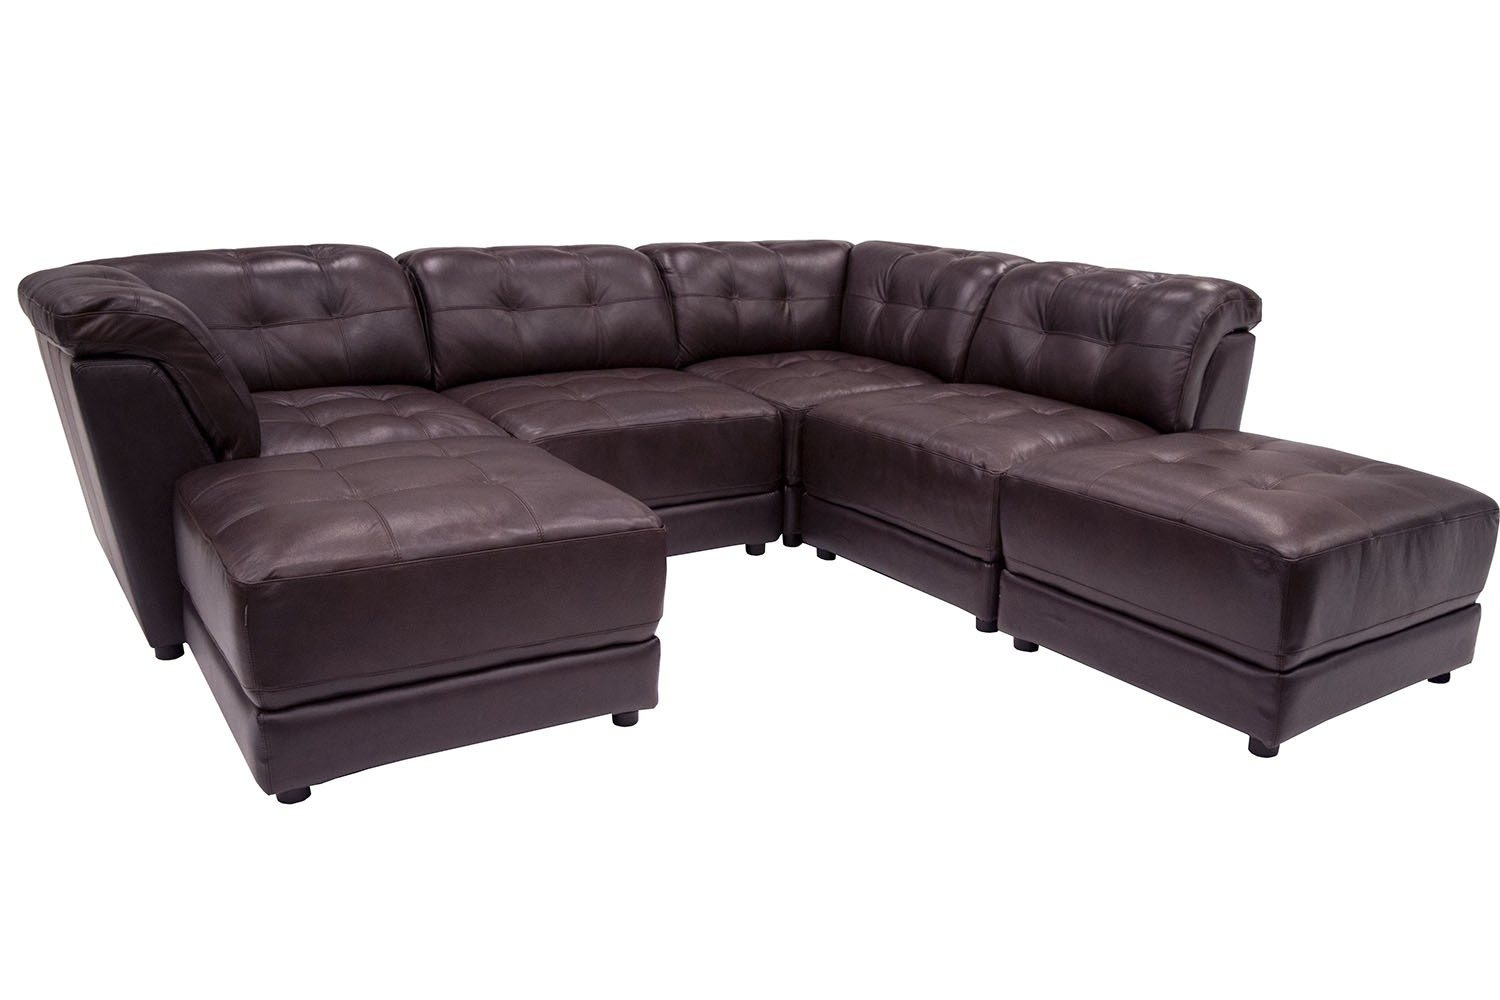 Inspiration about 6 Piece Modular Sectional Sofa Pertaining To 6 Piece Modular Sectional Sofa (#11 of 12)